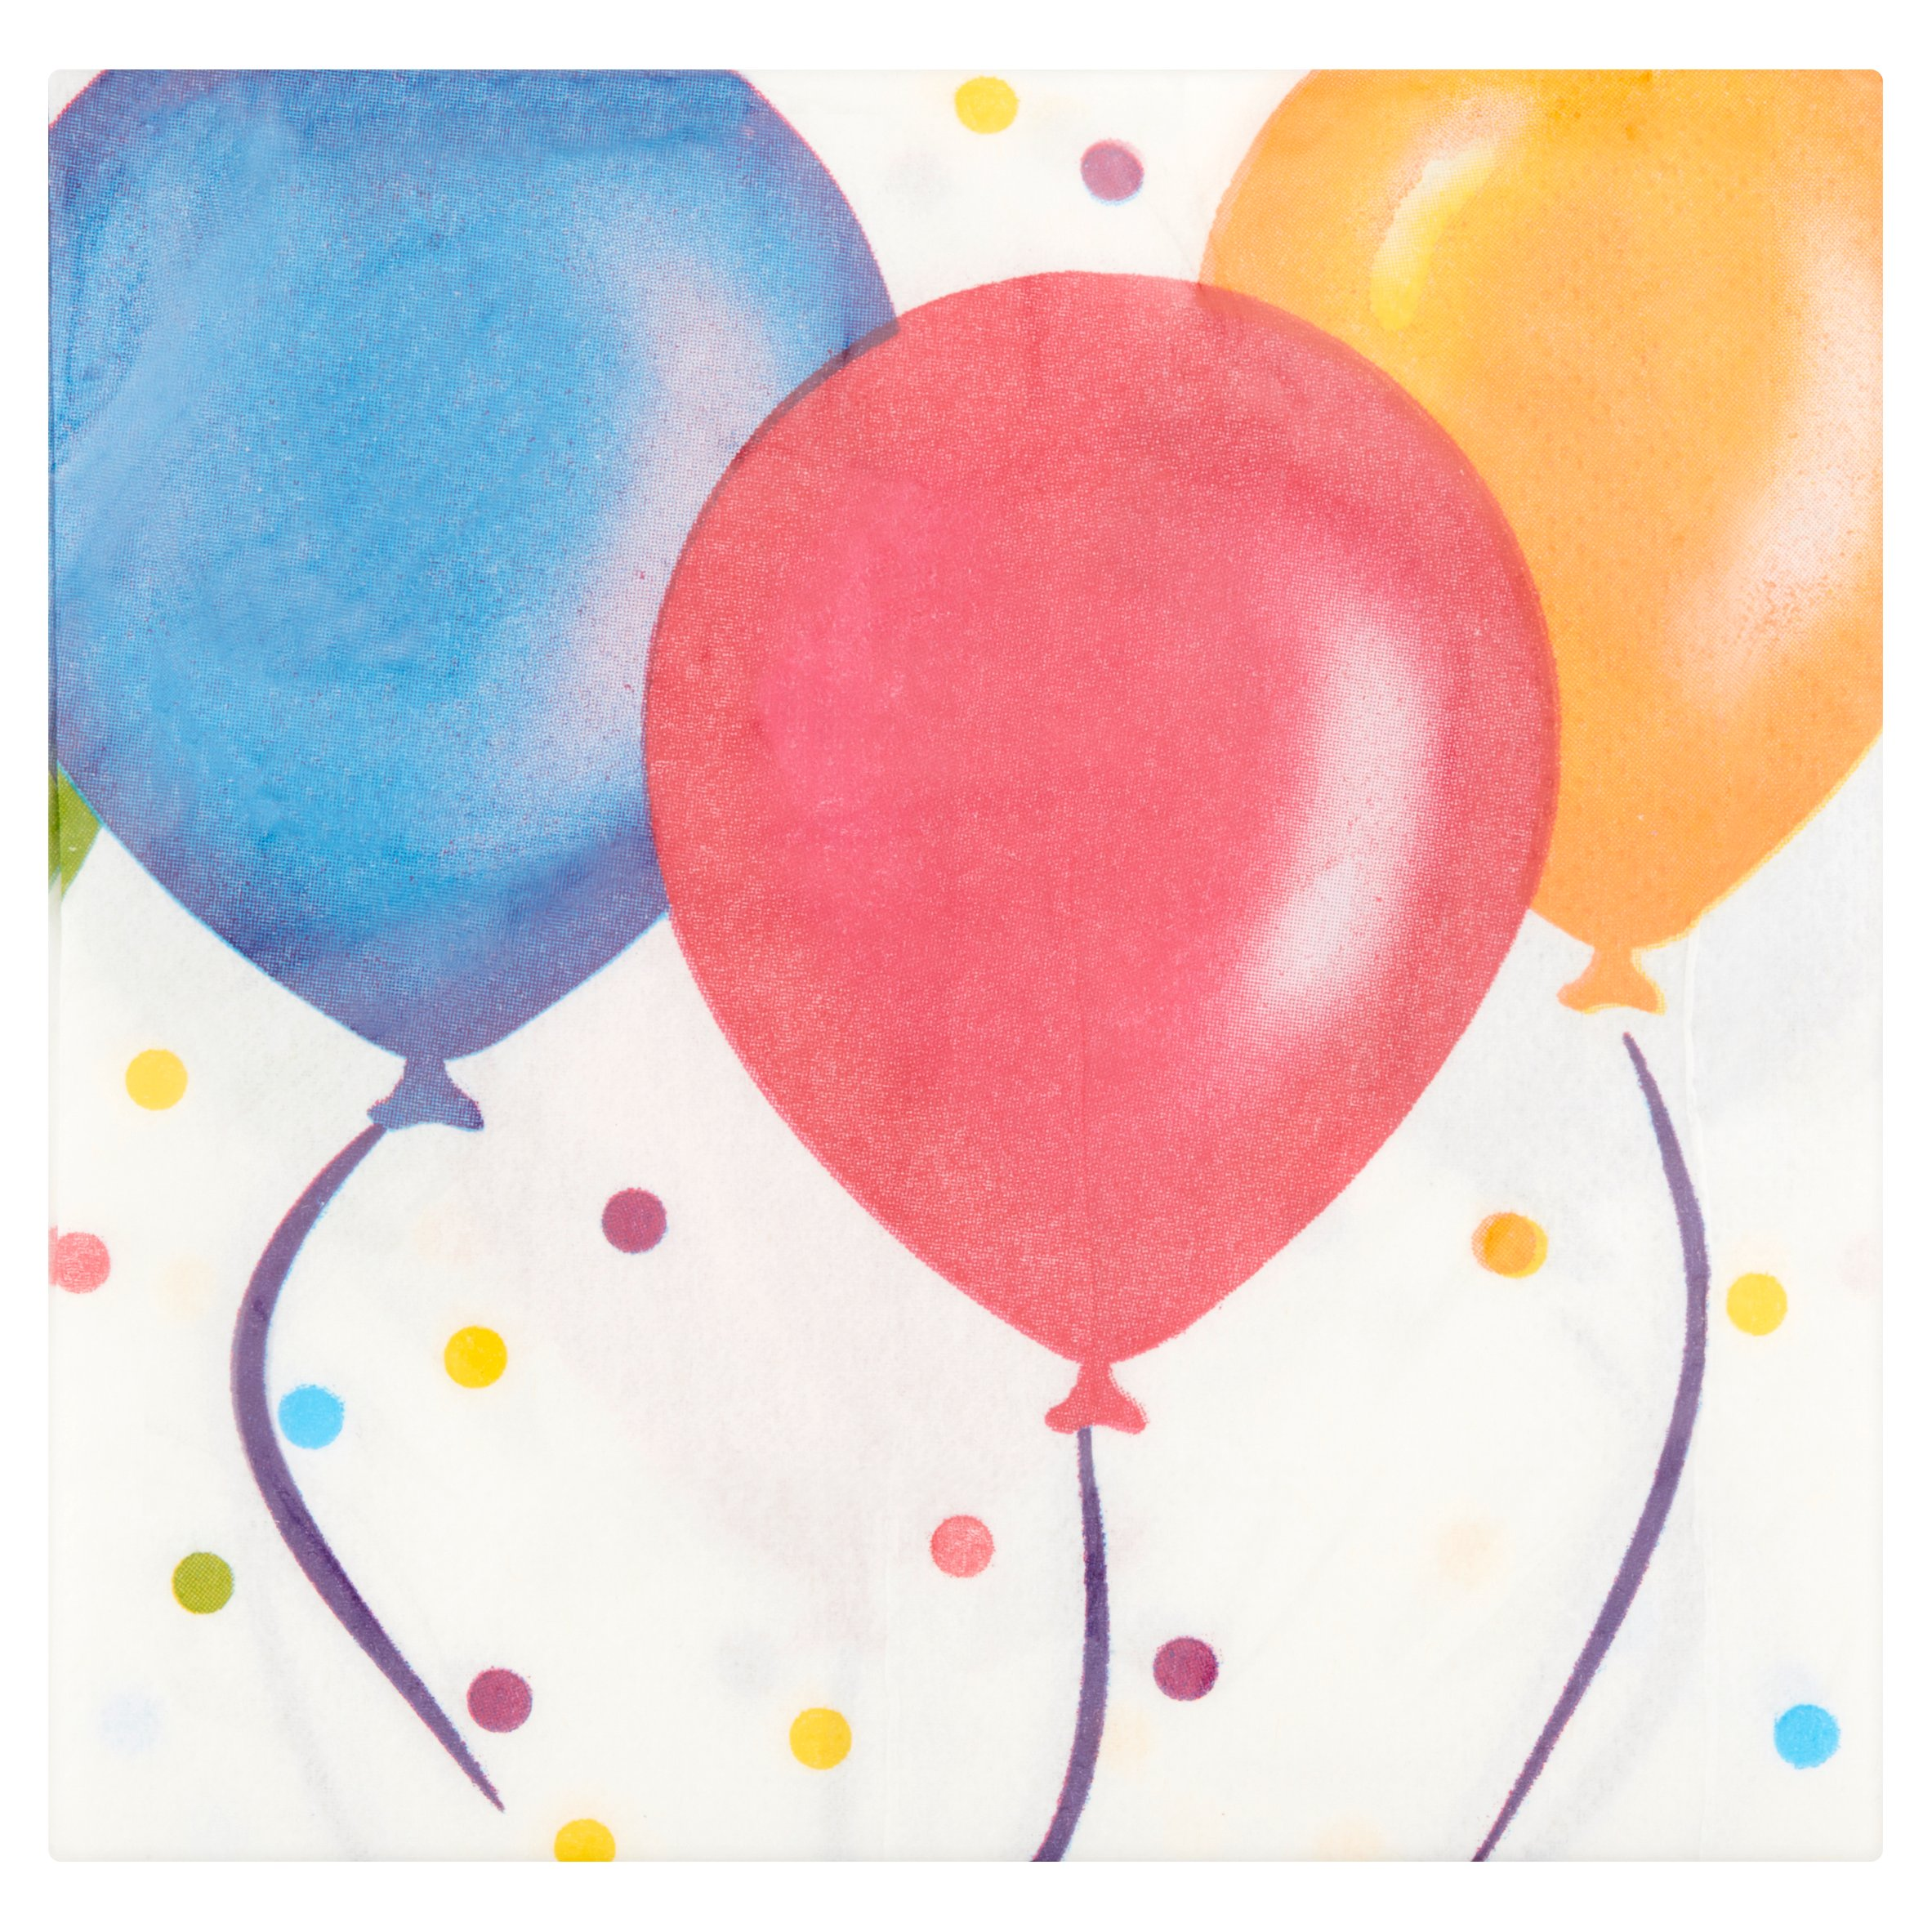 Birthday Balloon Beverage Napkins, 20-Pack by Wal-Mart Stores, Inc.